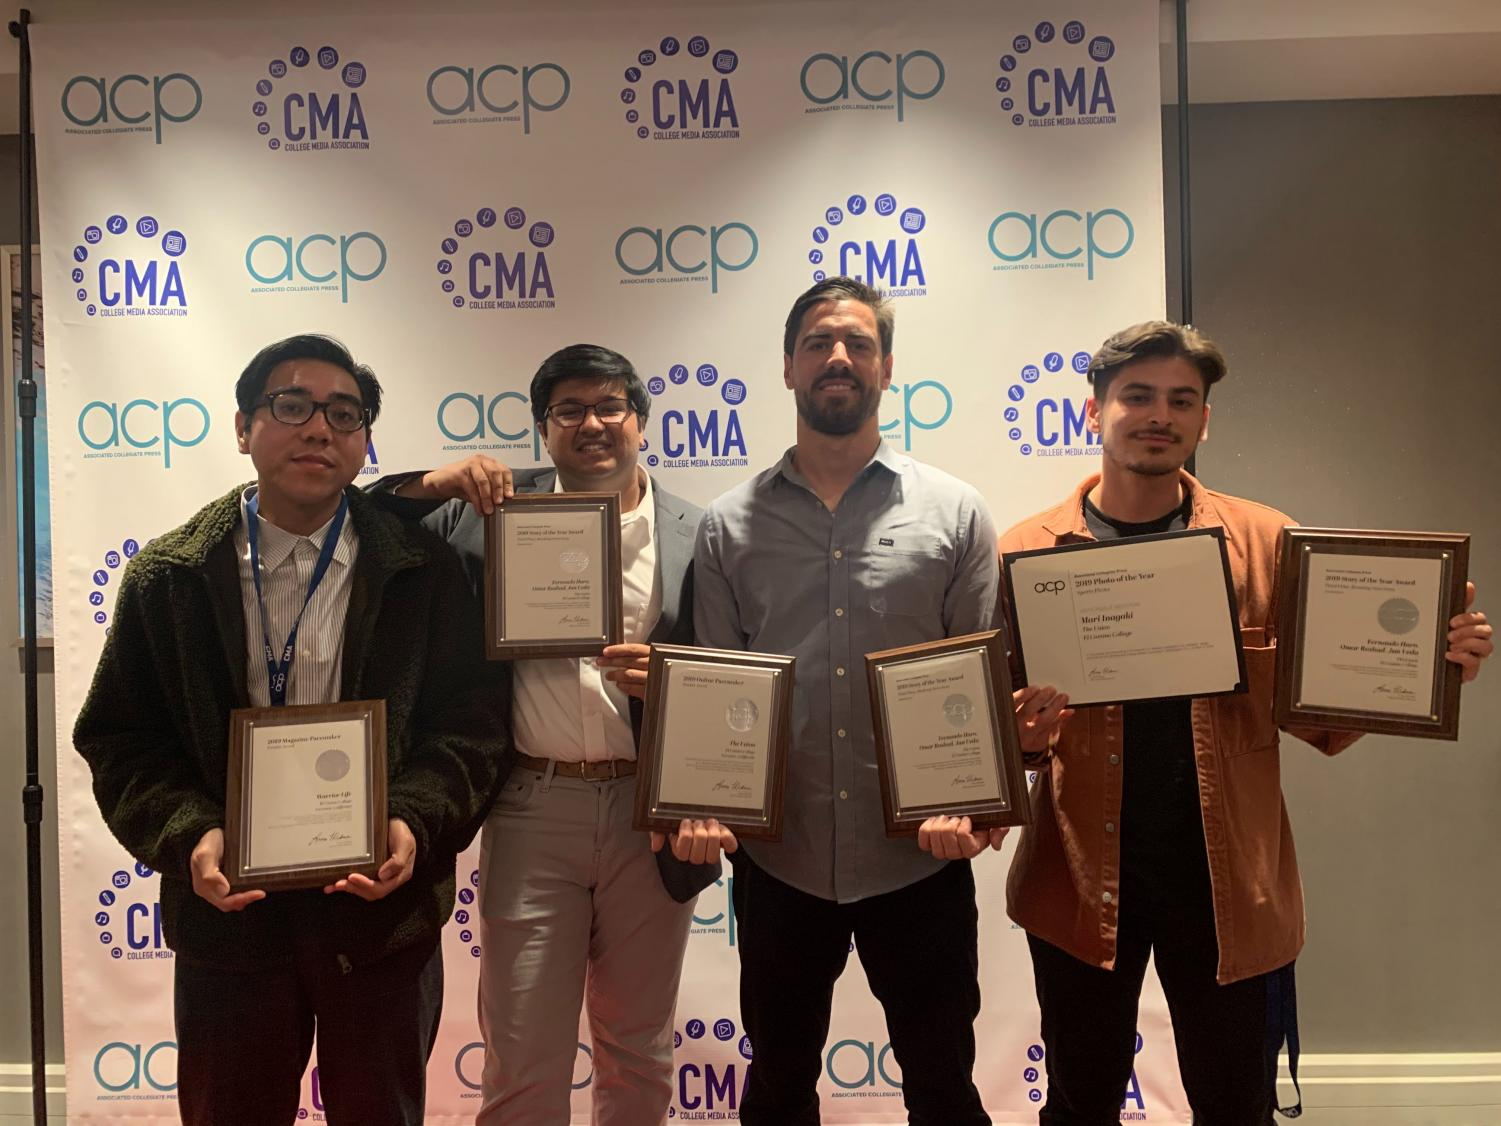 From left, Warrior Life Editor-in-Chief Kevin Caparaso and The Union's Managing Editor and News Editor Omar Rashad, Copy Editor Ryan Farrell and Editor-in-Chief Fernando Haro receive awards at the National College Media Convention on Saturday, Nov. 2. The Union newspaper and Warrior Life magazine received national awards from the Assoicated Colegiate Press and College Media Association. Photo courtesy of Stefanie Frith, Student Media Advisor